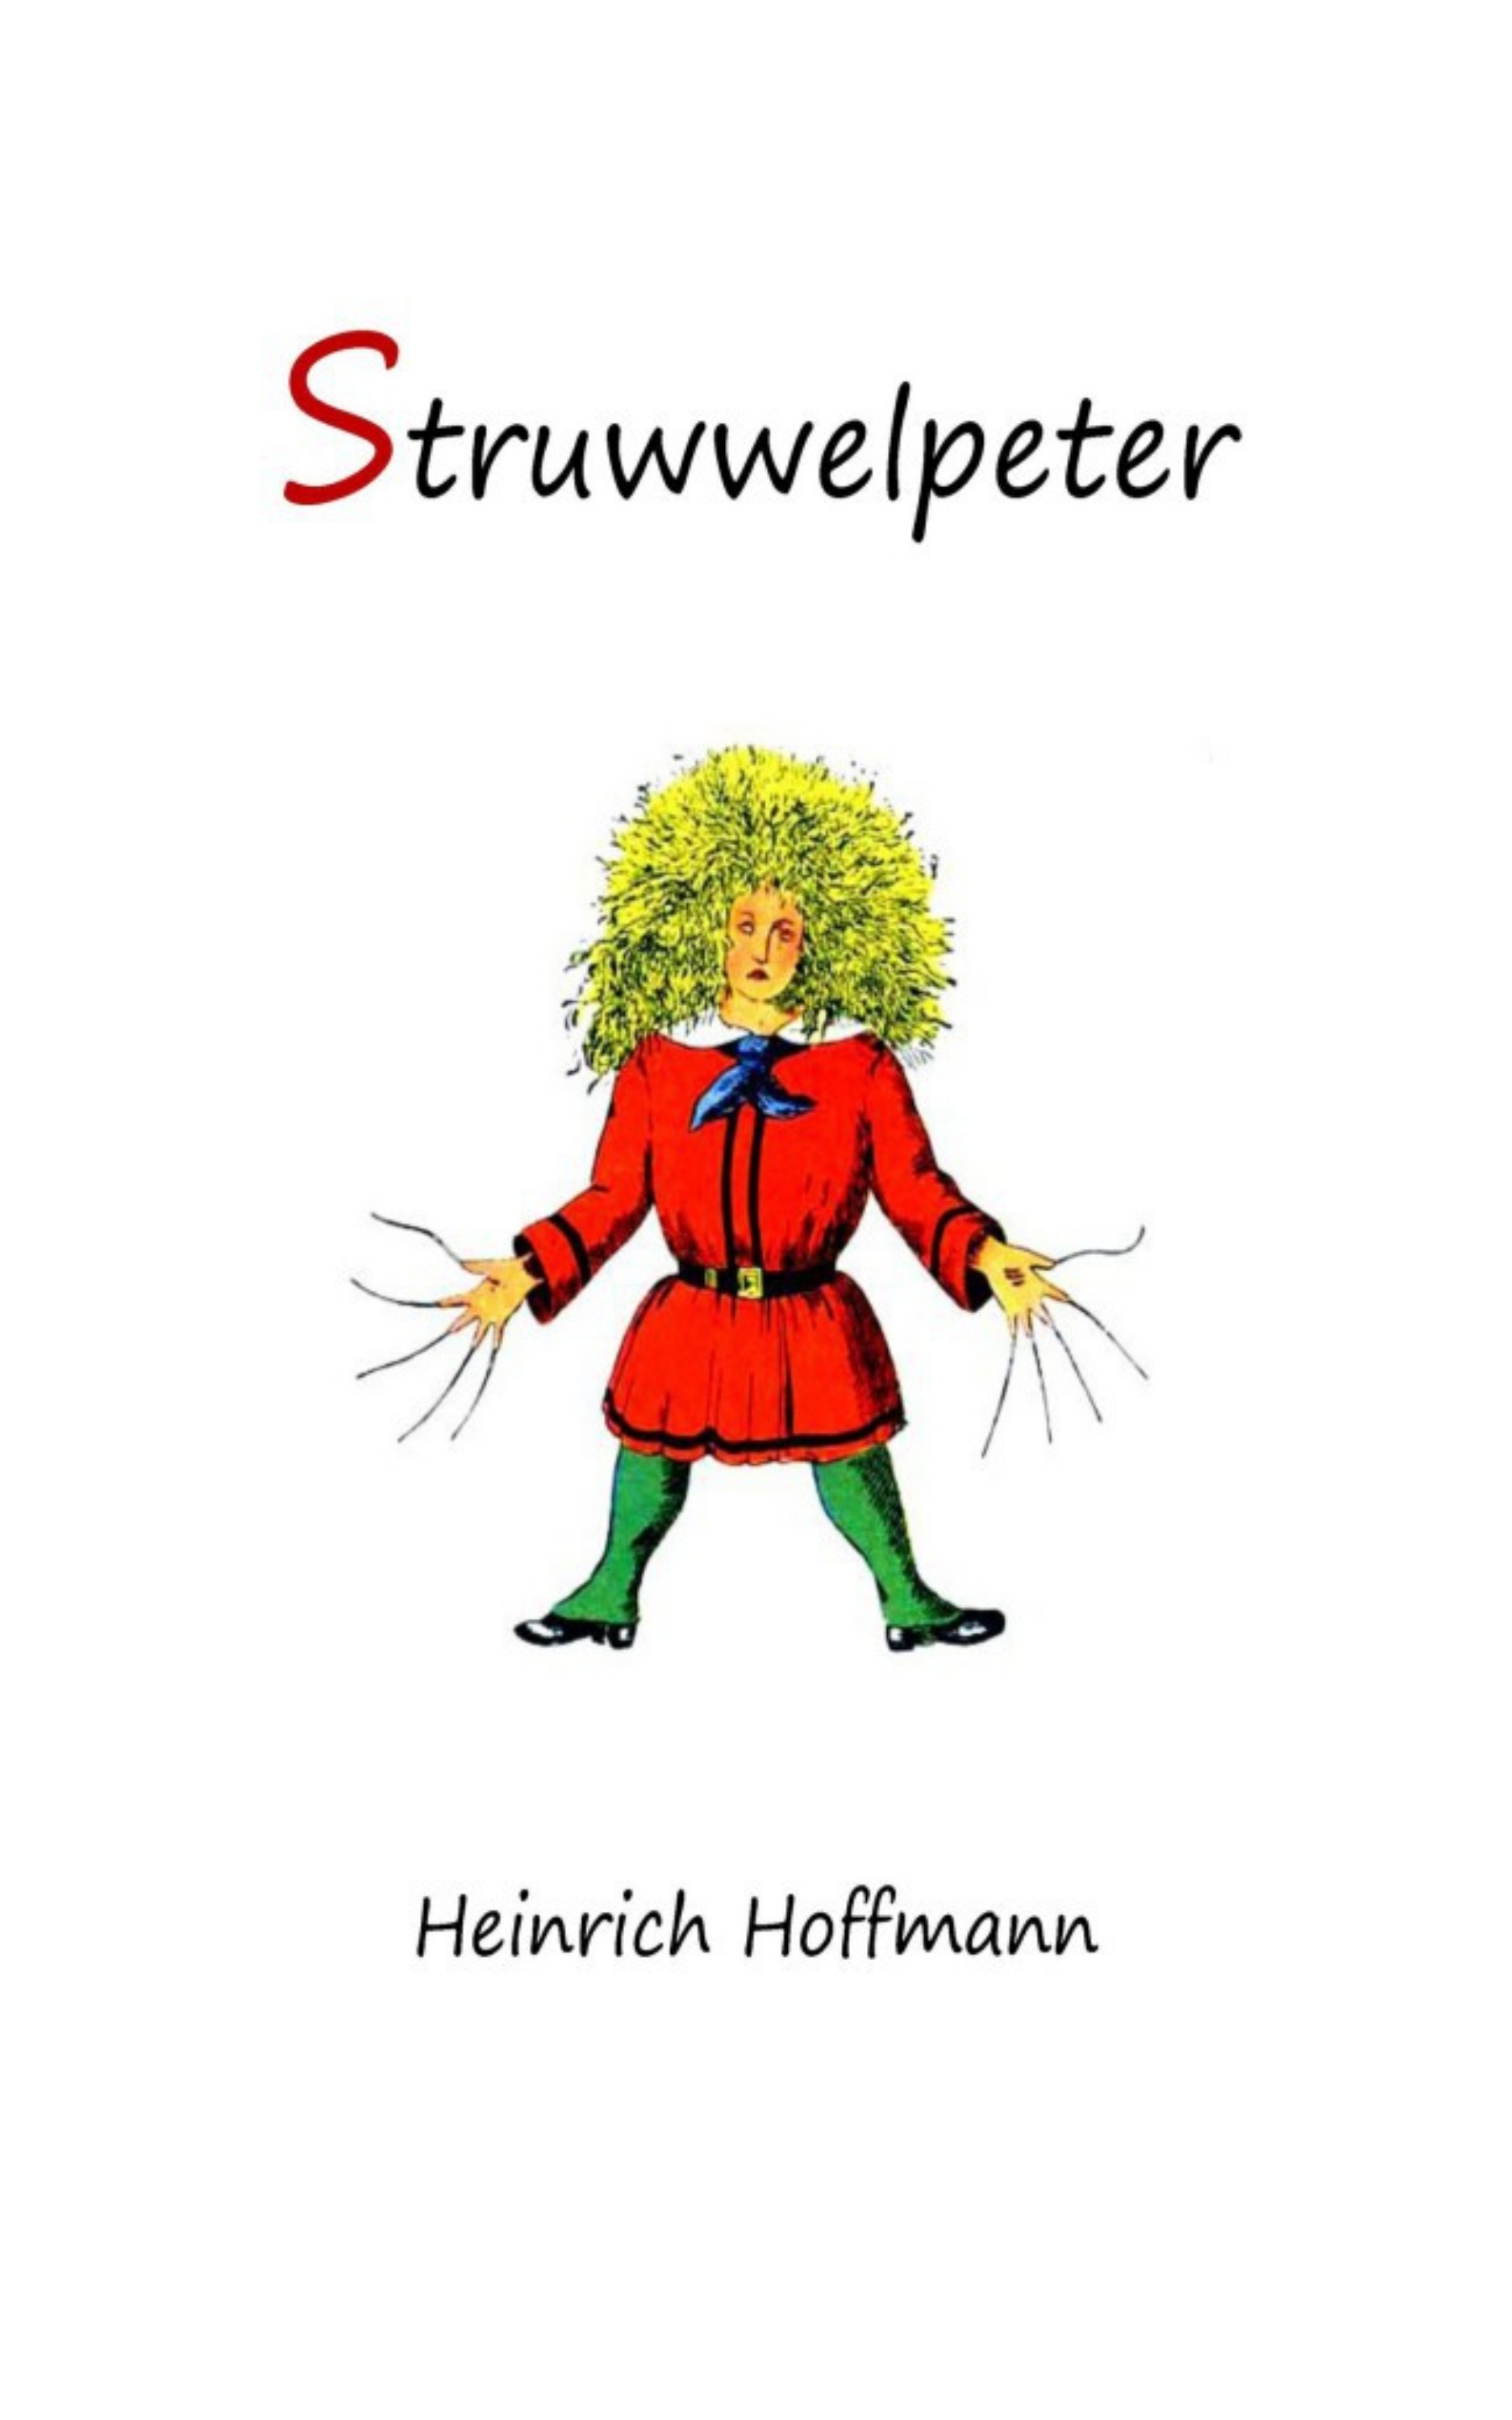 Heinrich Hoffmann Struwwelpeter: Merry Stories and Funny Pictures gale zona neighborhood stories